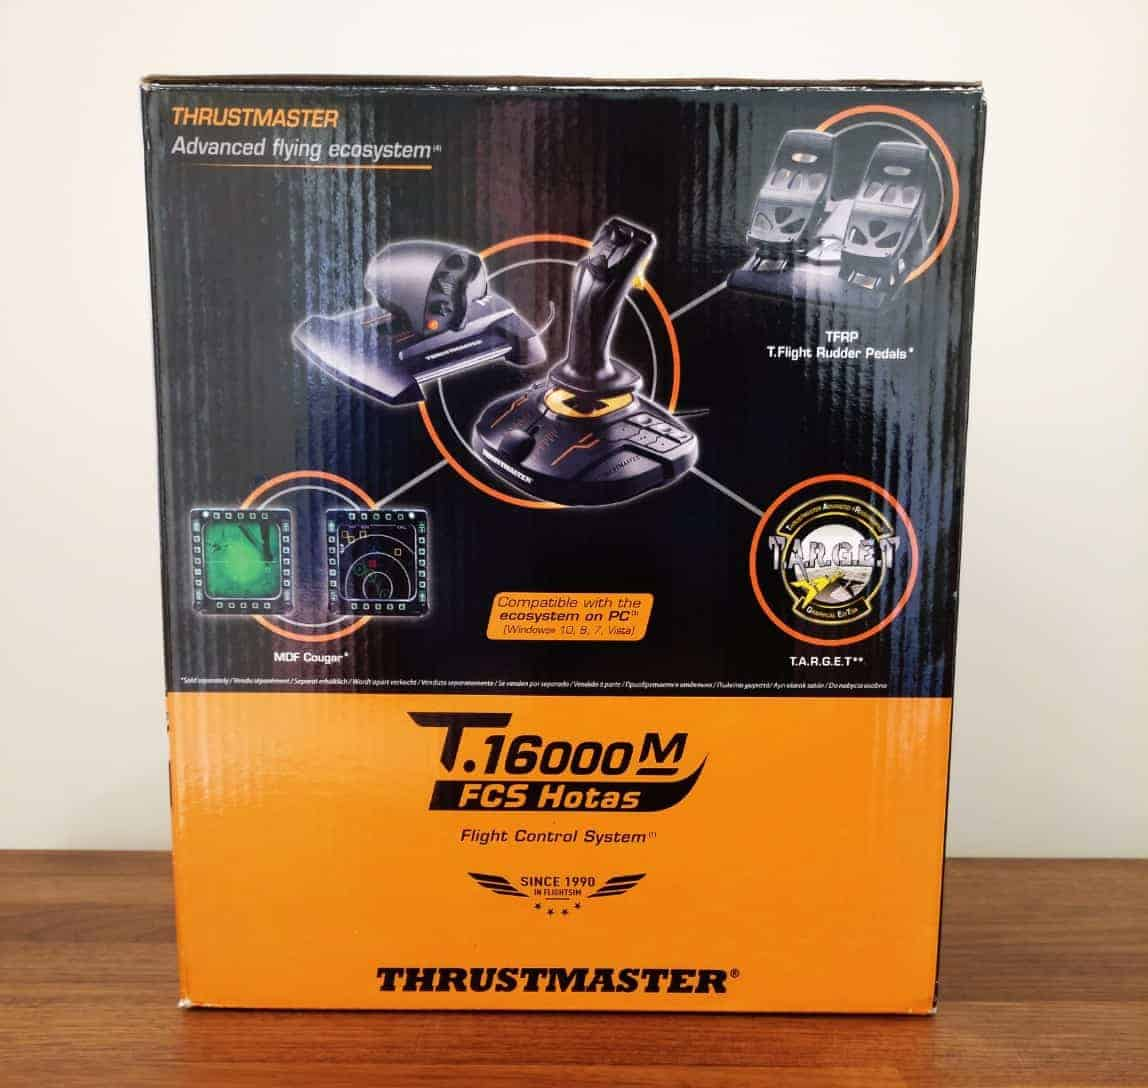 Thrustmaster-Flightstick-Photos04 Thrustmaster T.16000M FCS Hotas Joystick Review